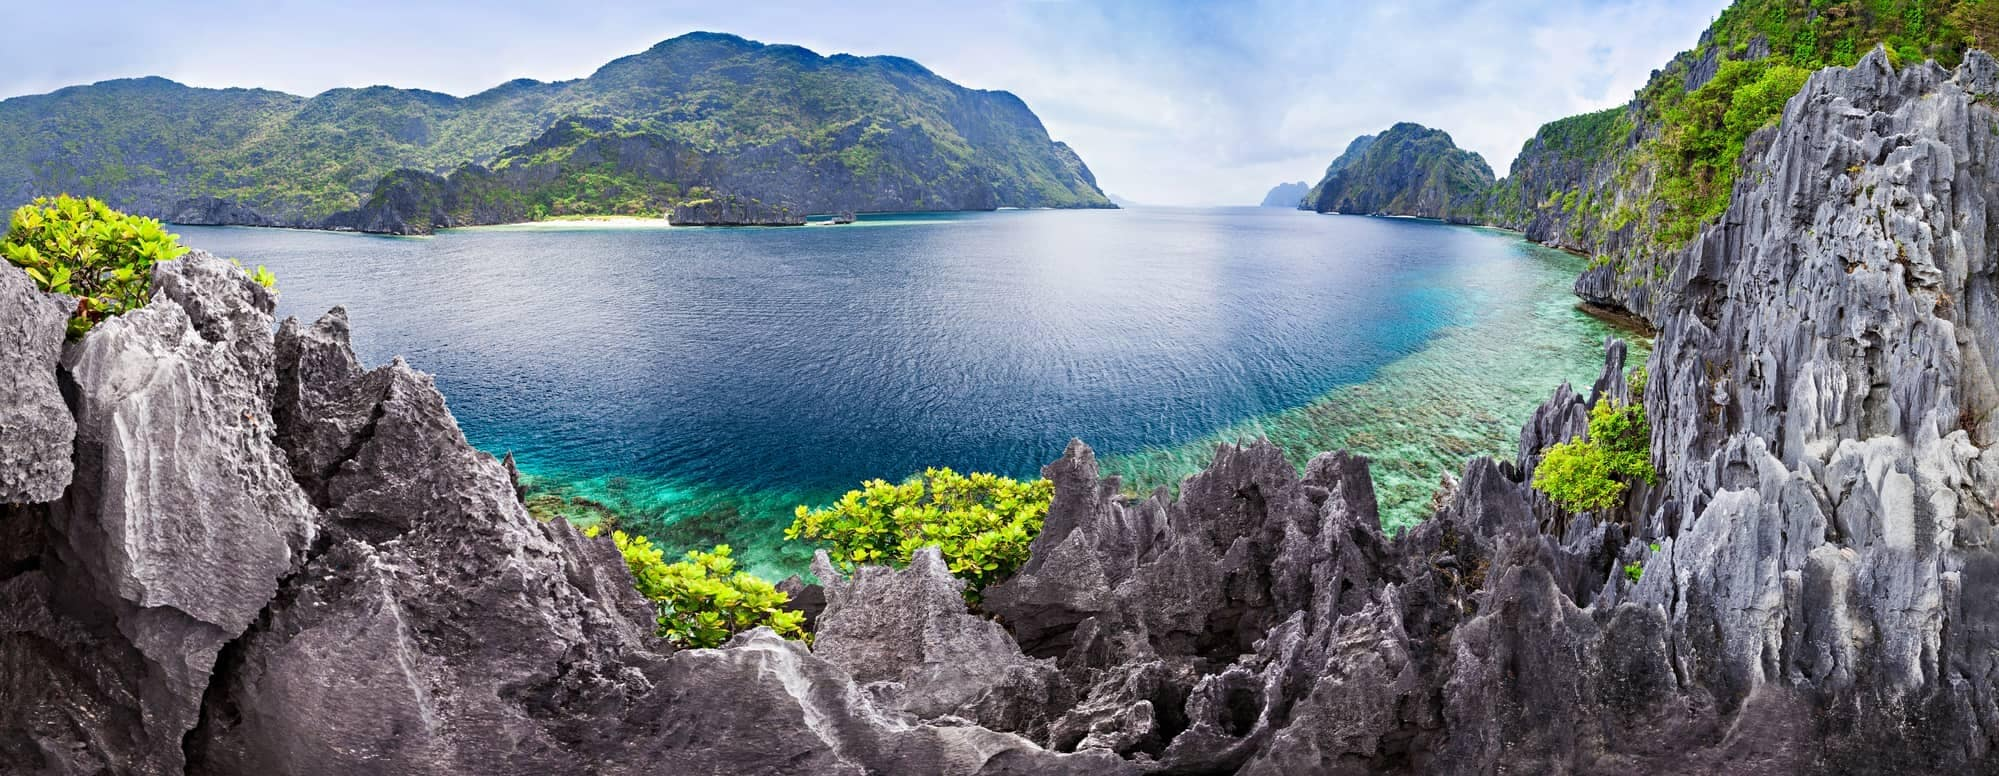 Very beautiful lagoon in the islands of Palawan, Philippines